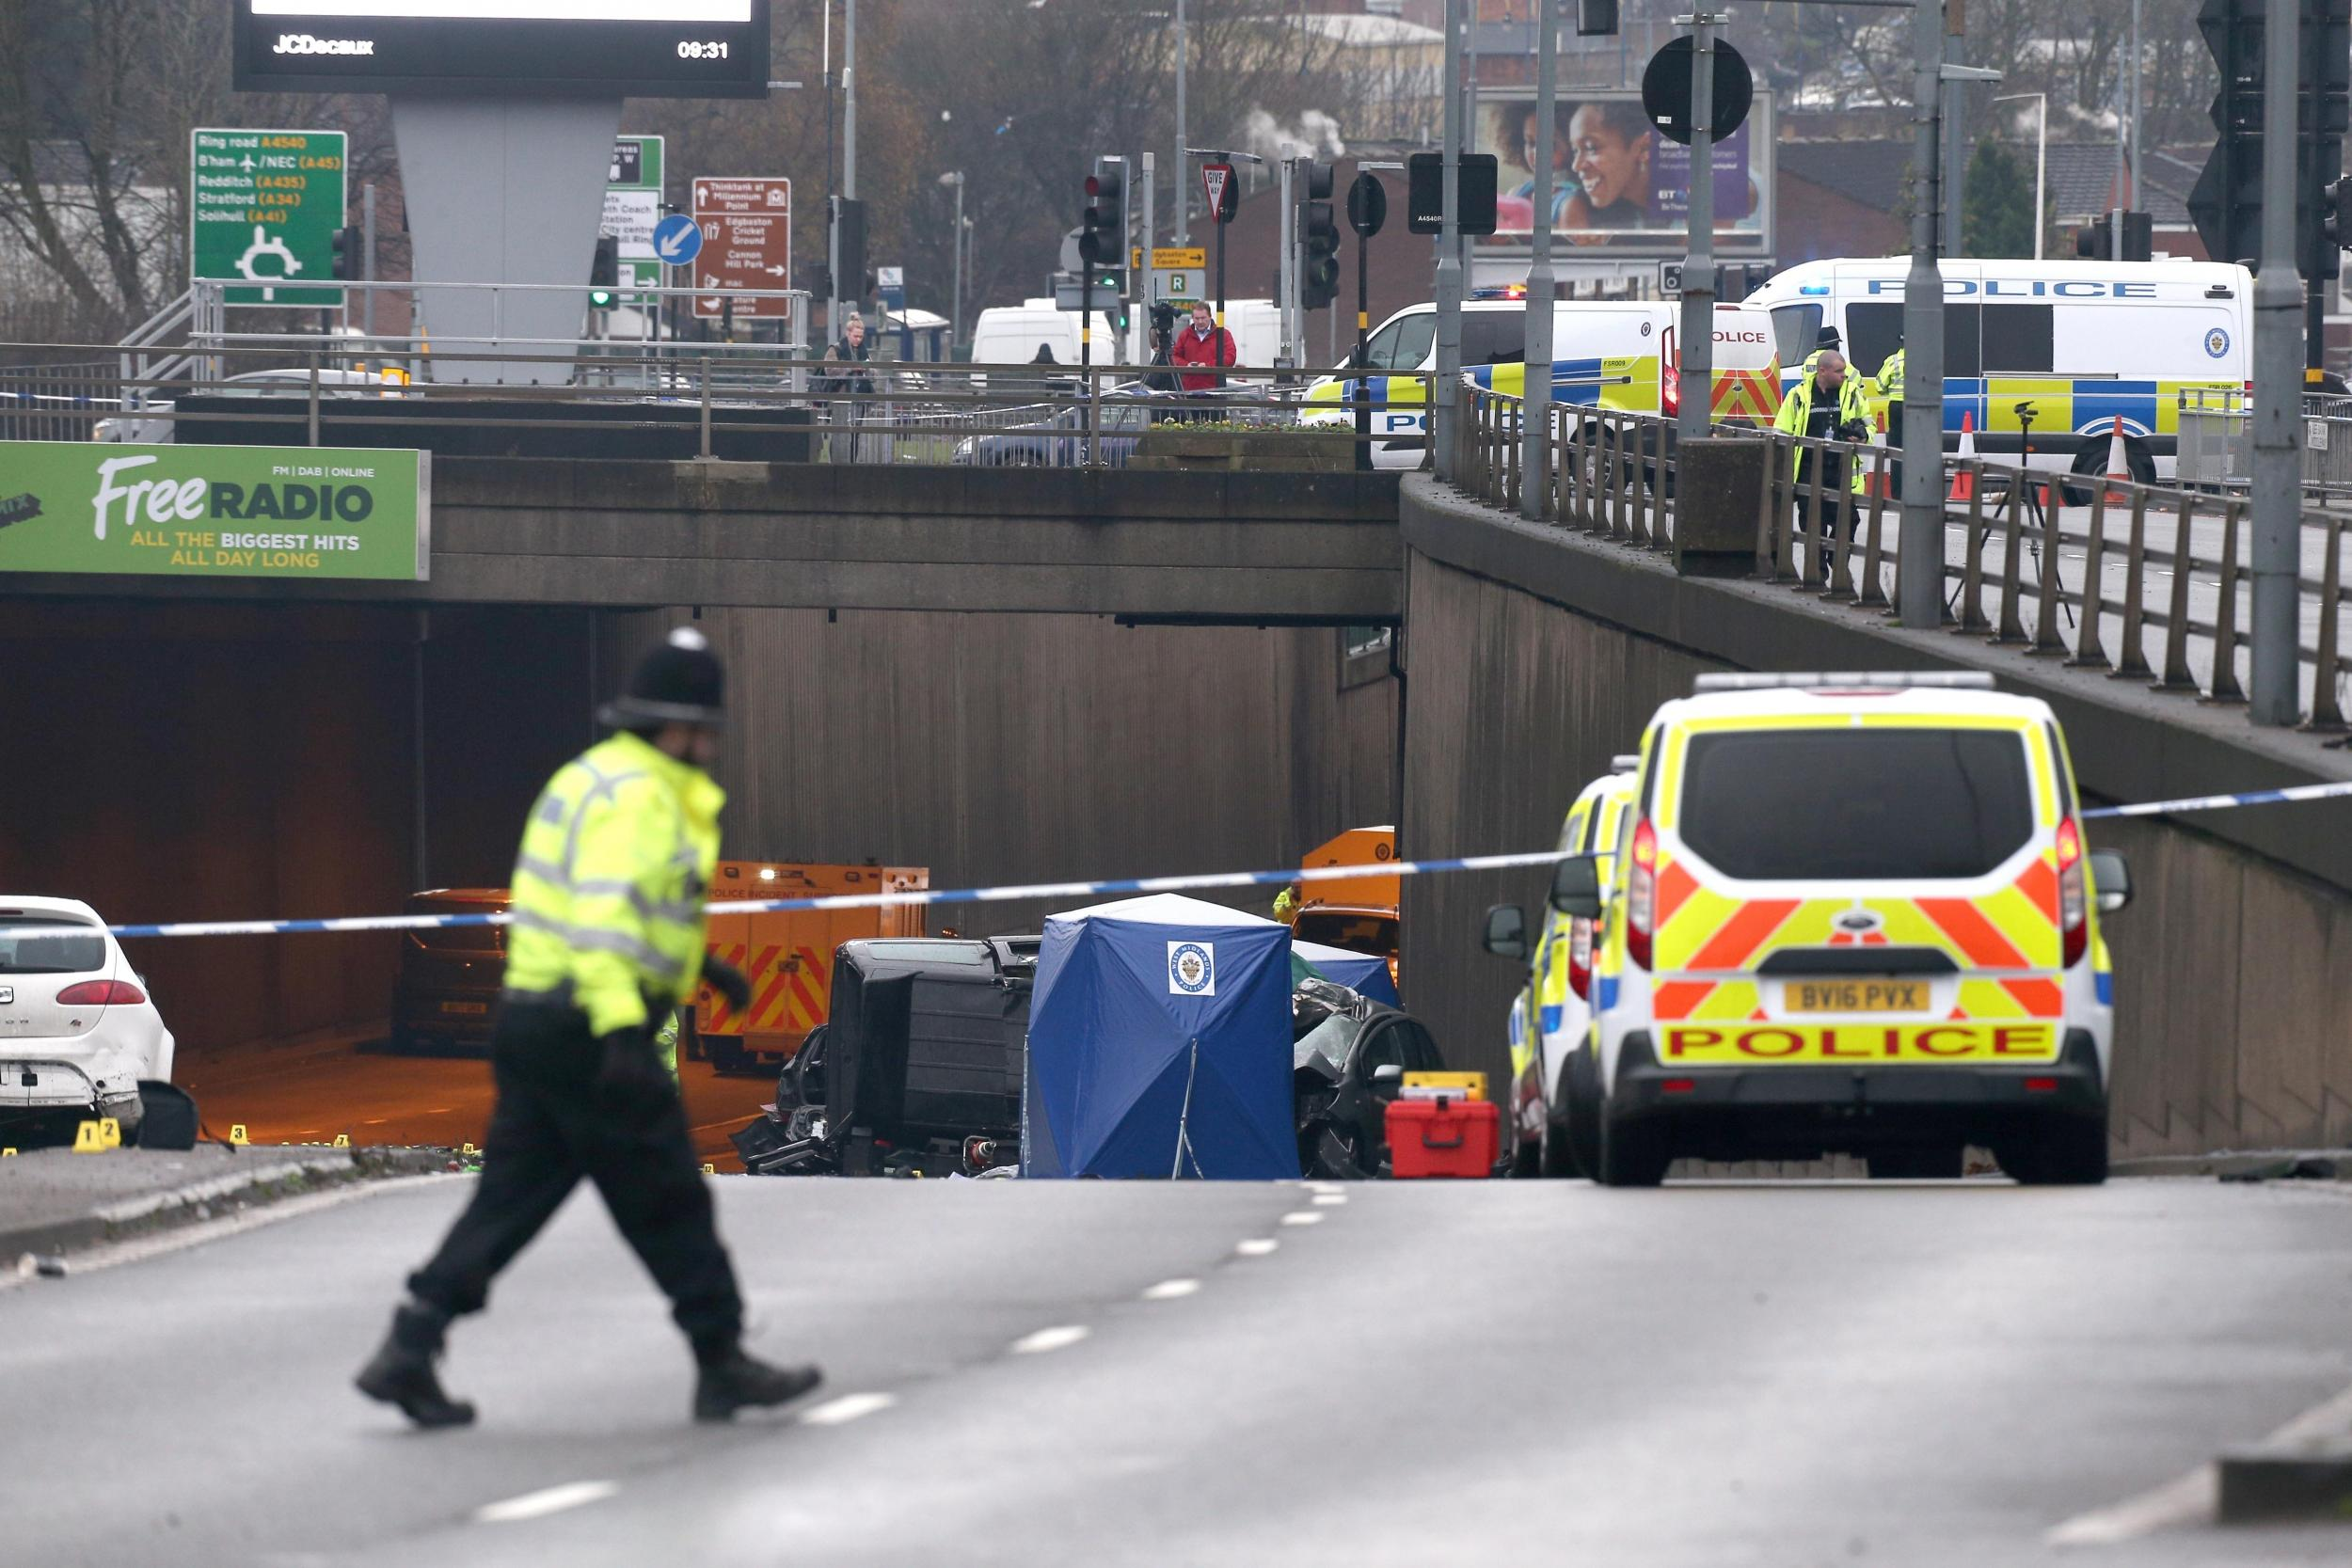 birmingham car crash: six dead and one critically injured in